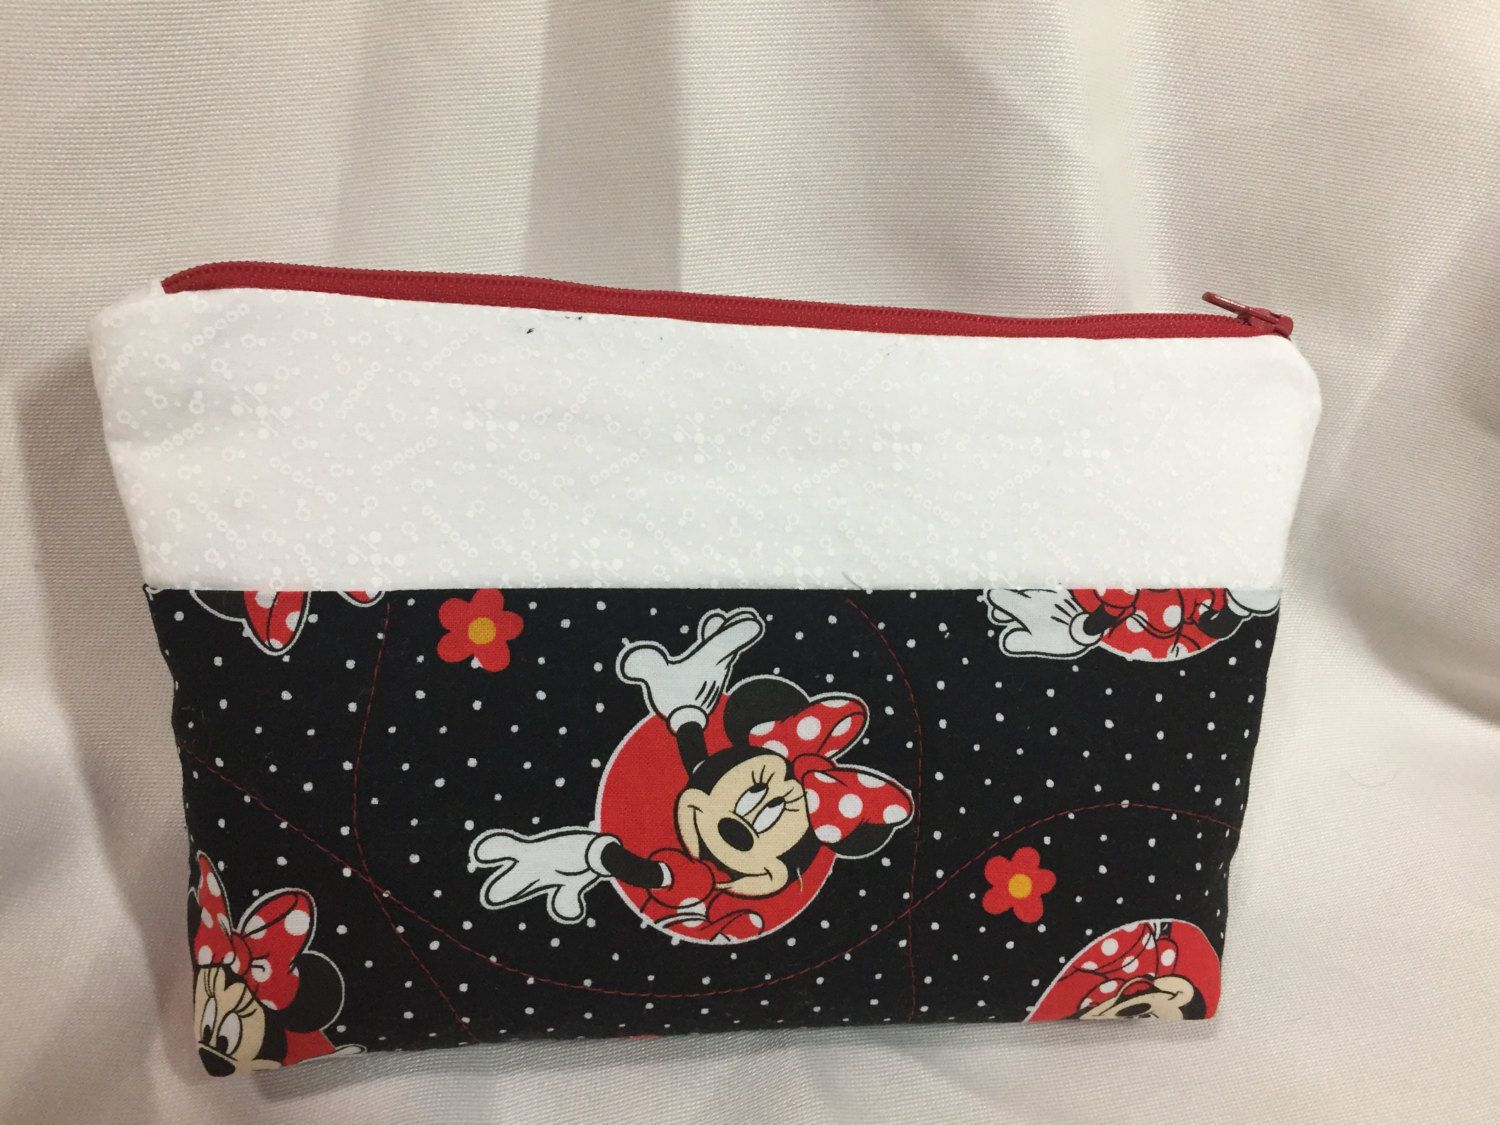 Minnie Mouse Black/Red/White Cosmetic/Make Up/Travel Bag by MommyMaryCrafts on Etsy